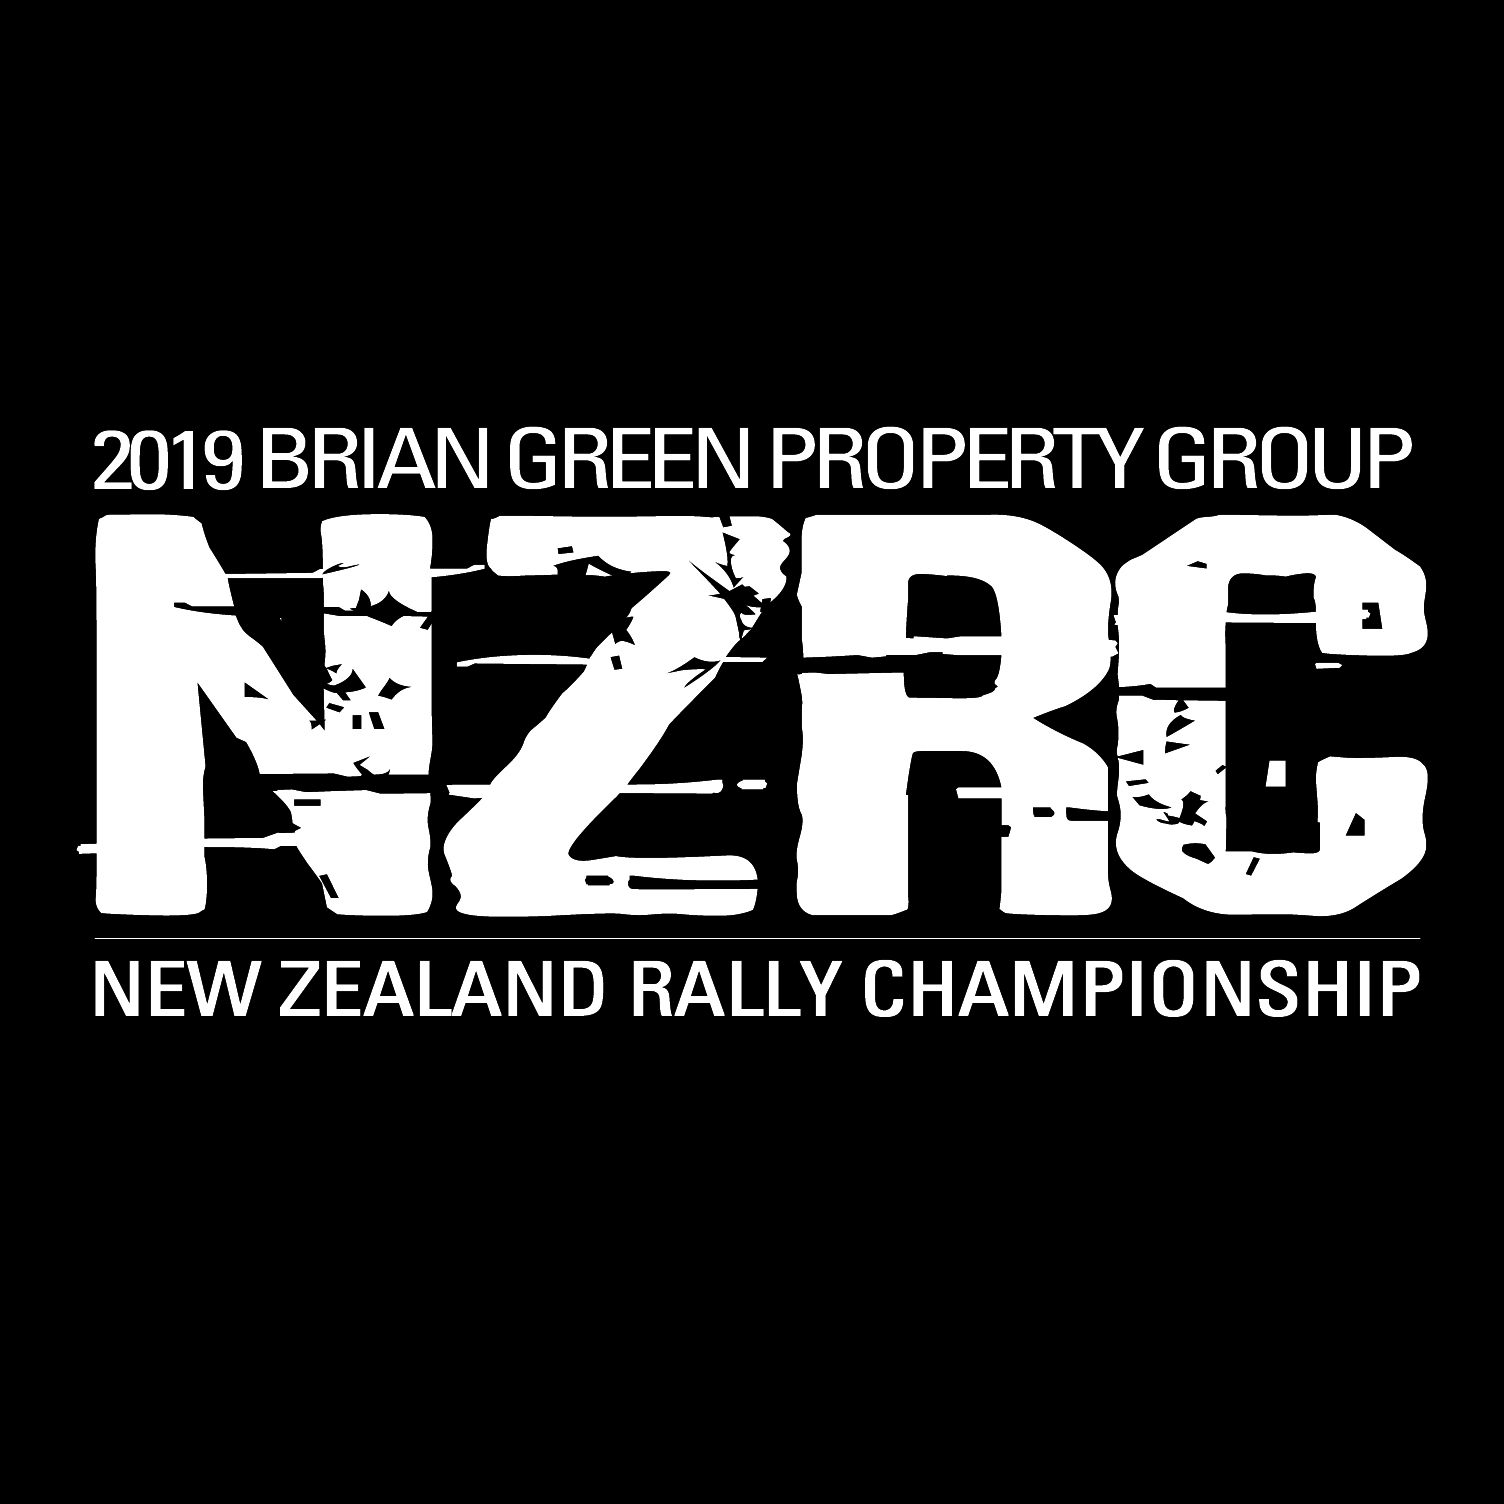 Is tarmac in the NZRC's future? | :: Brian Green Property Group New Zealand Rally Championship ::